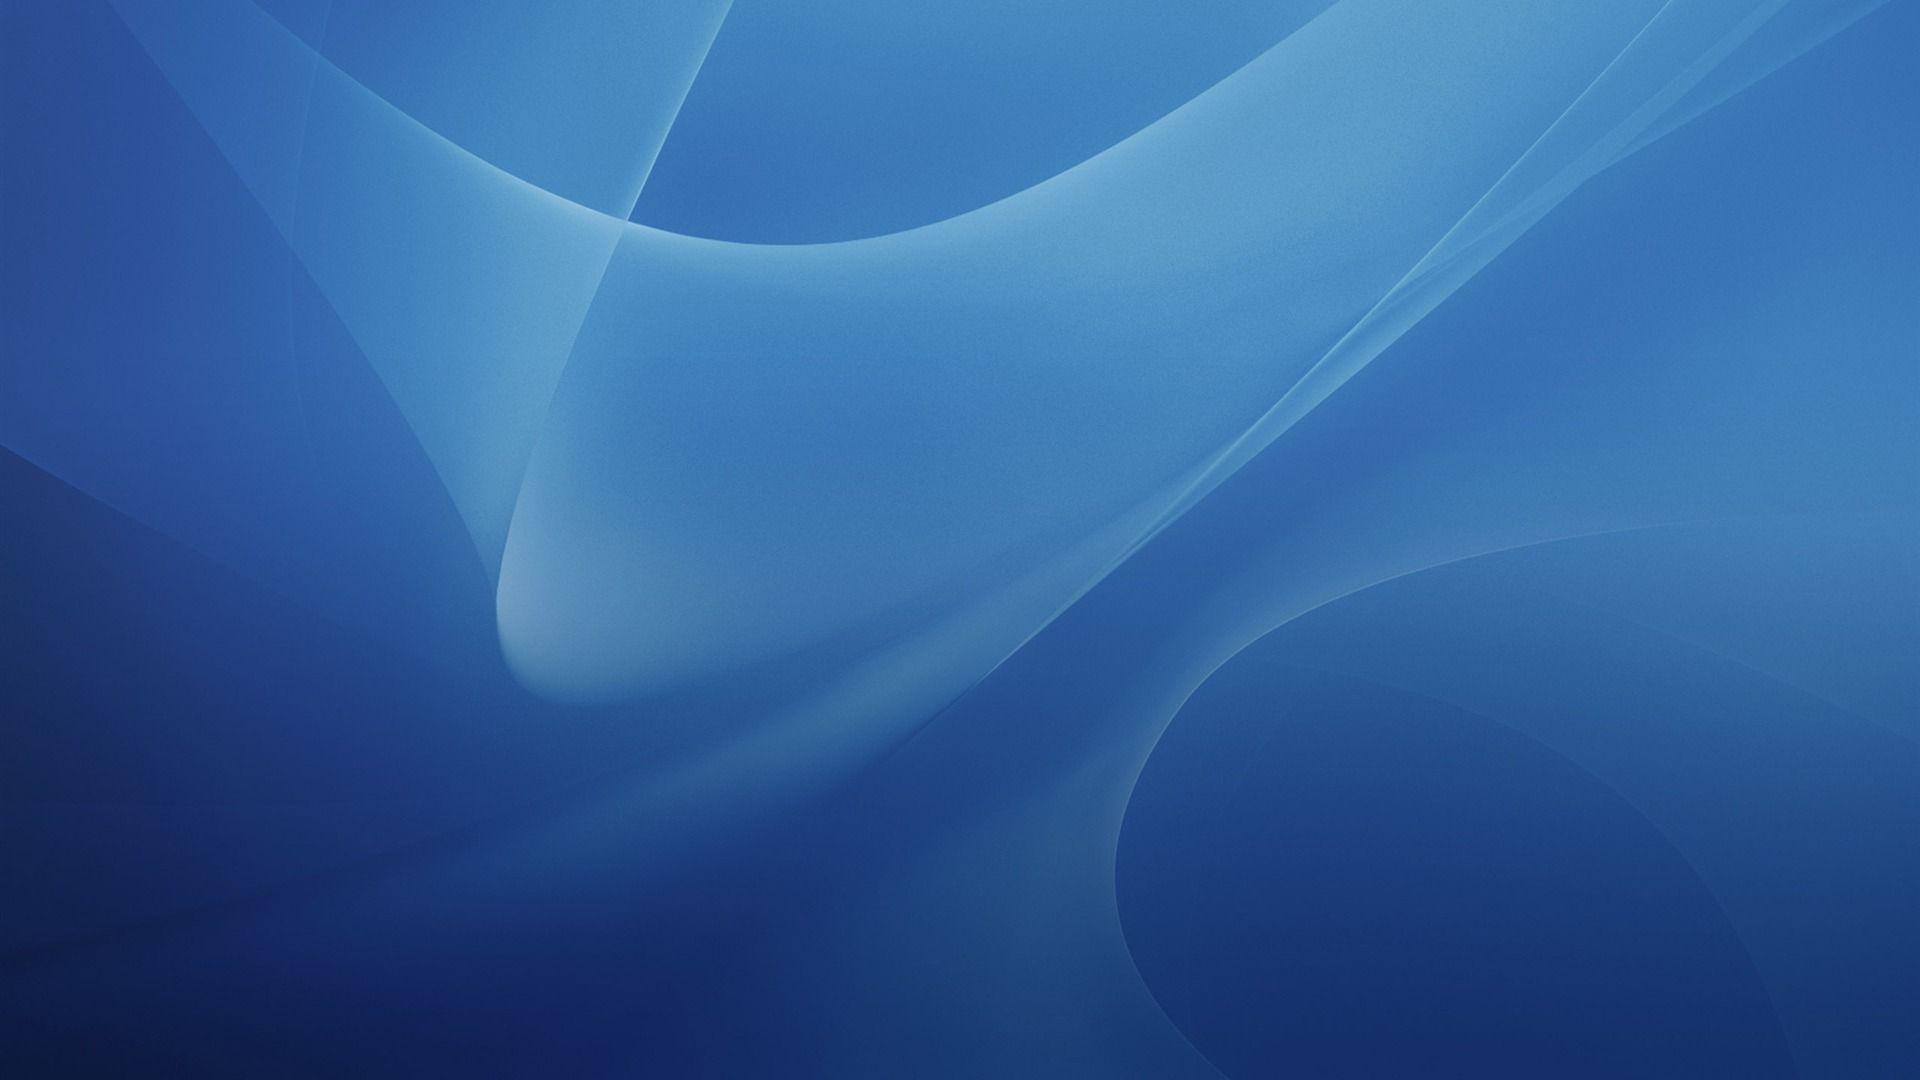 mac os x wallpapers wallpaper cave